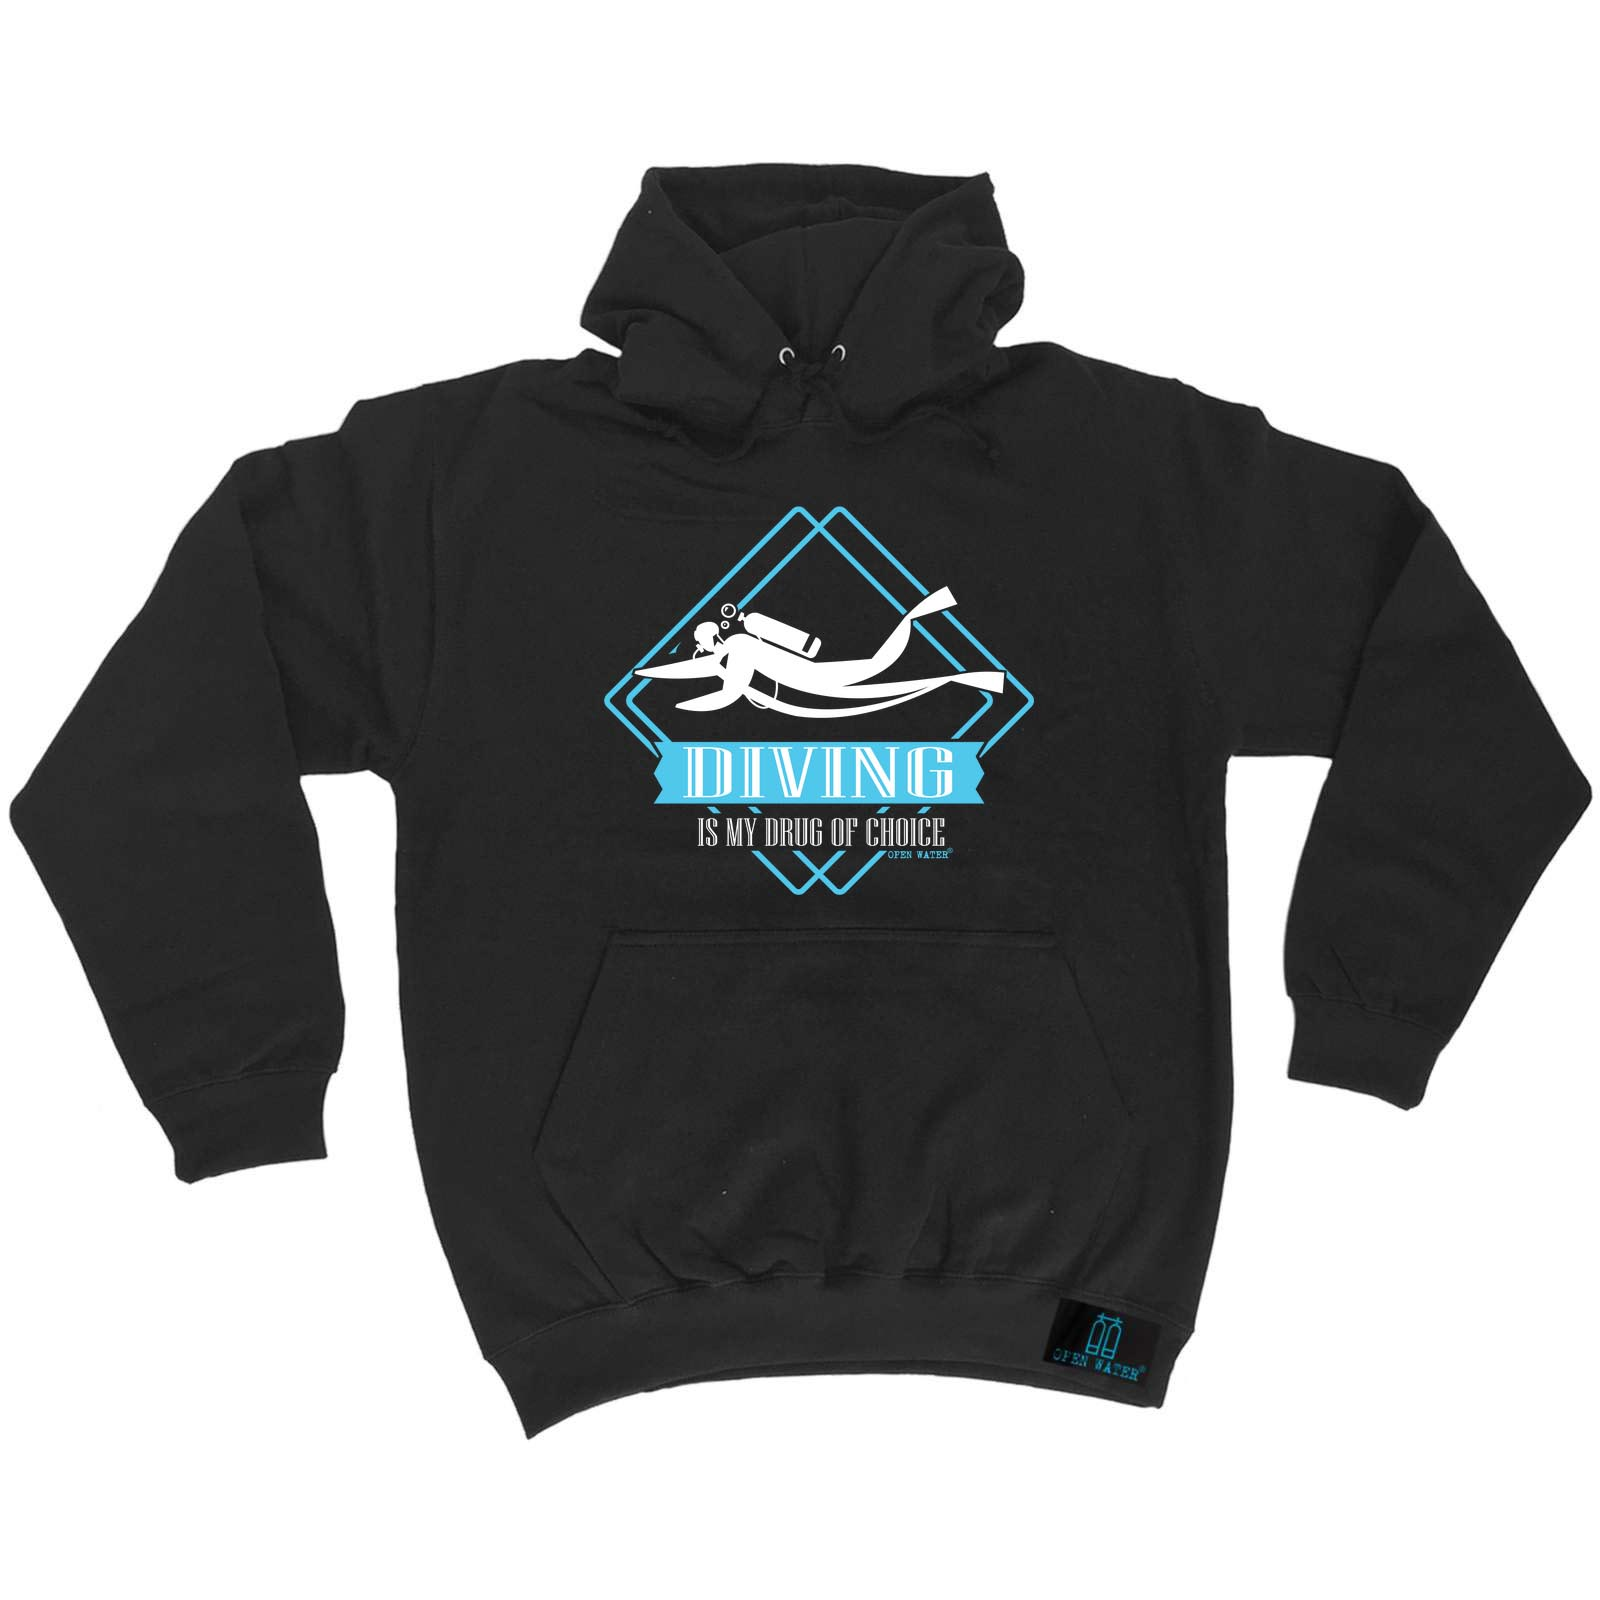 Scuba Scuba Scuba Diving Hoodie Hoody Funny Novelty hooded Top - Drug Of Choice Diving 0c607c